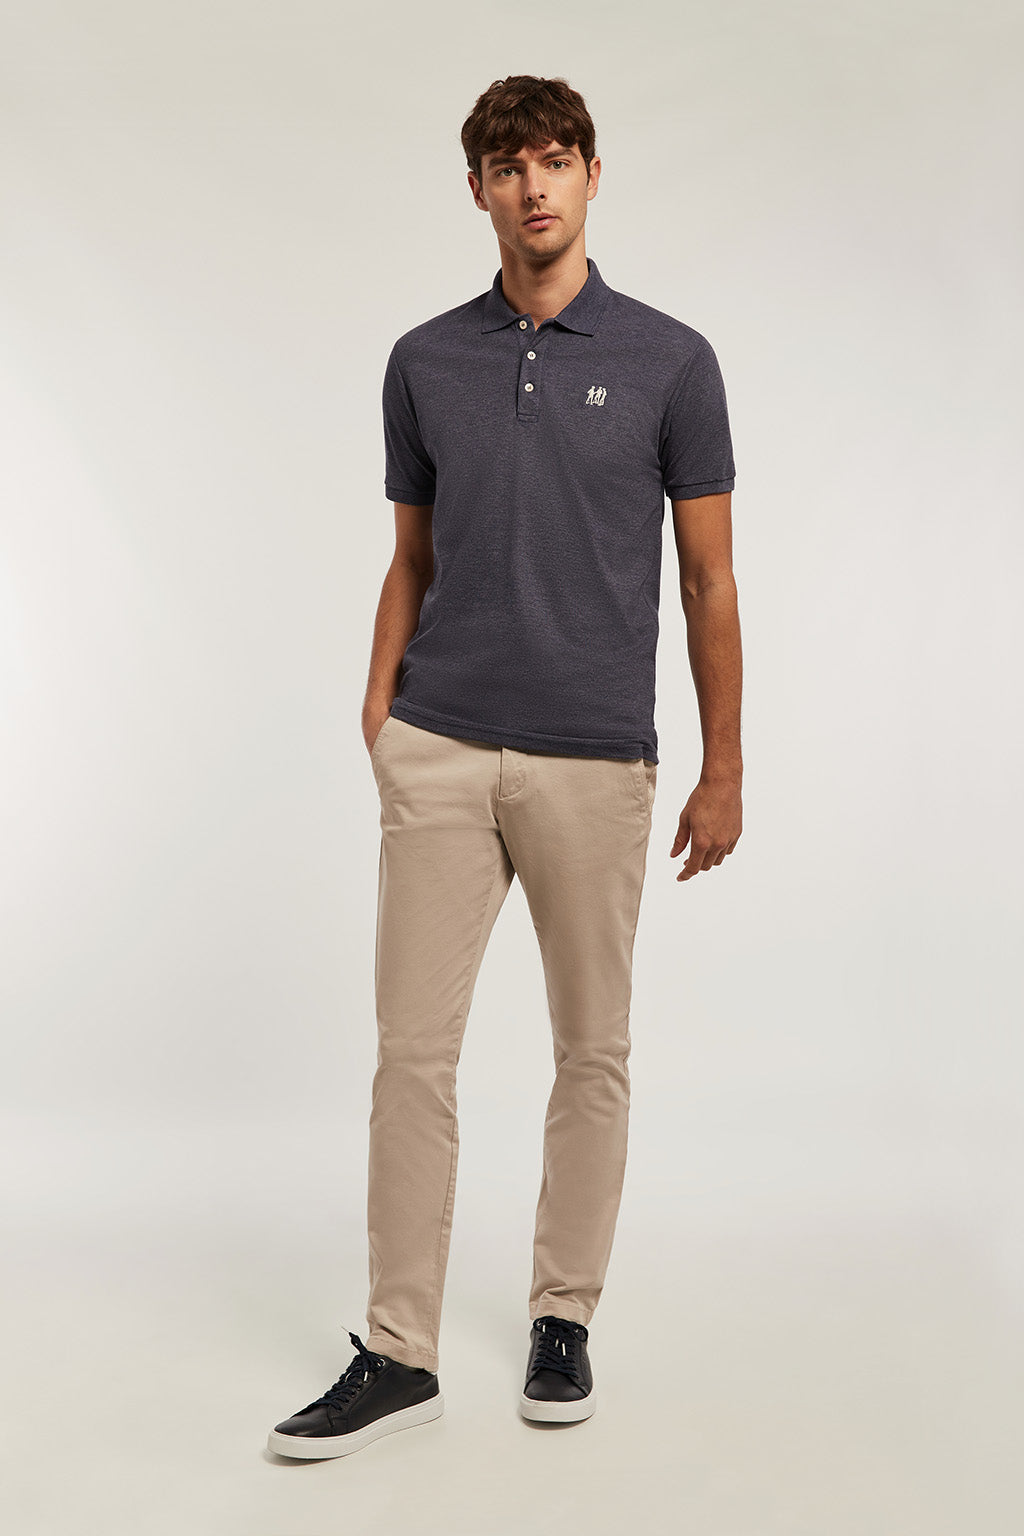 Poloshirt marineblau mit Stickerei in beige